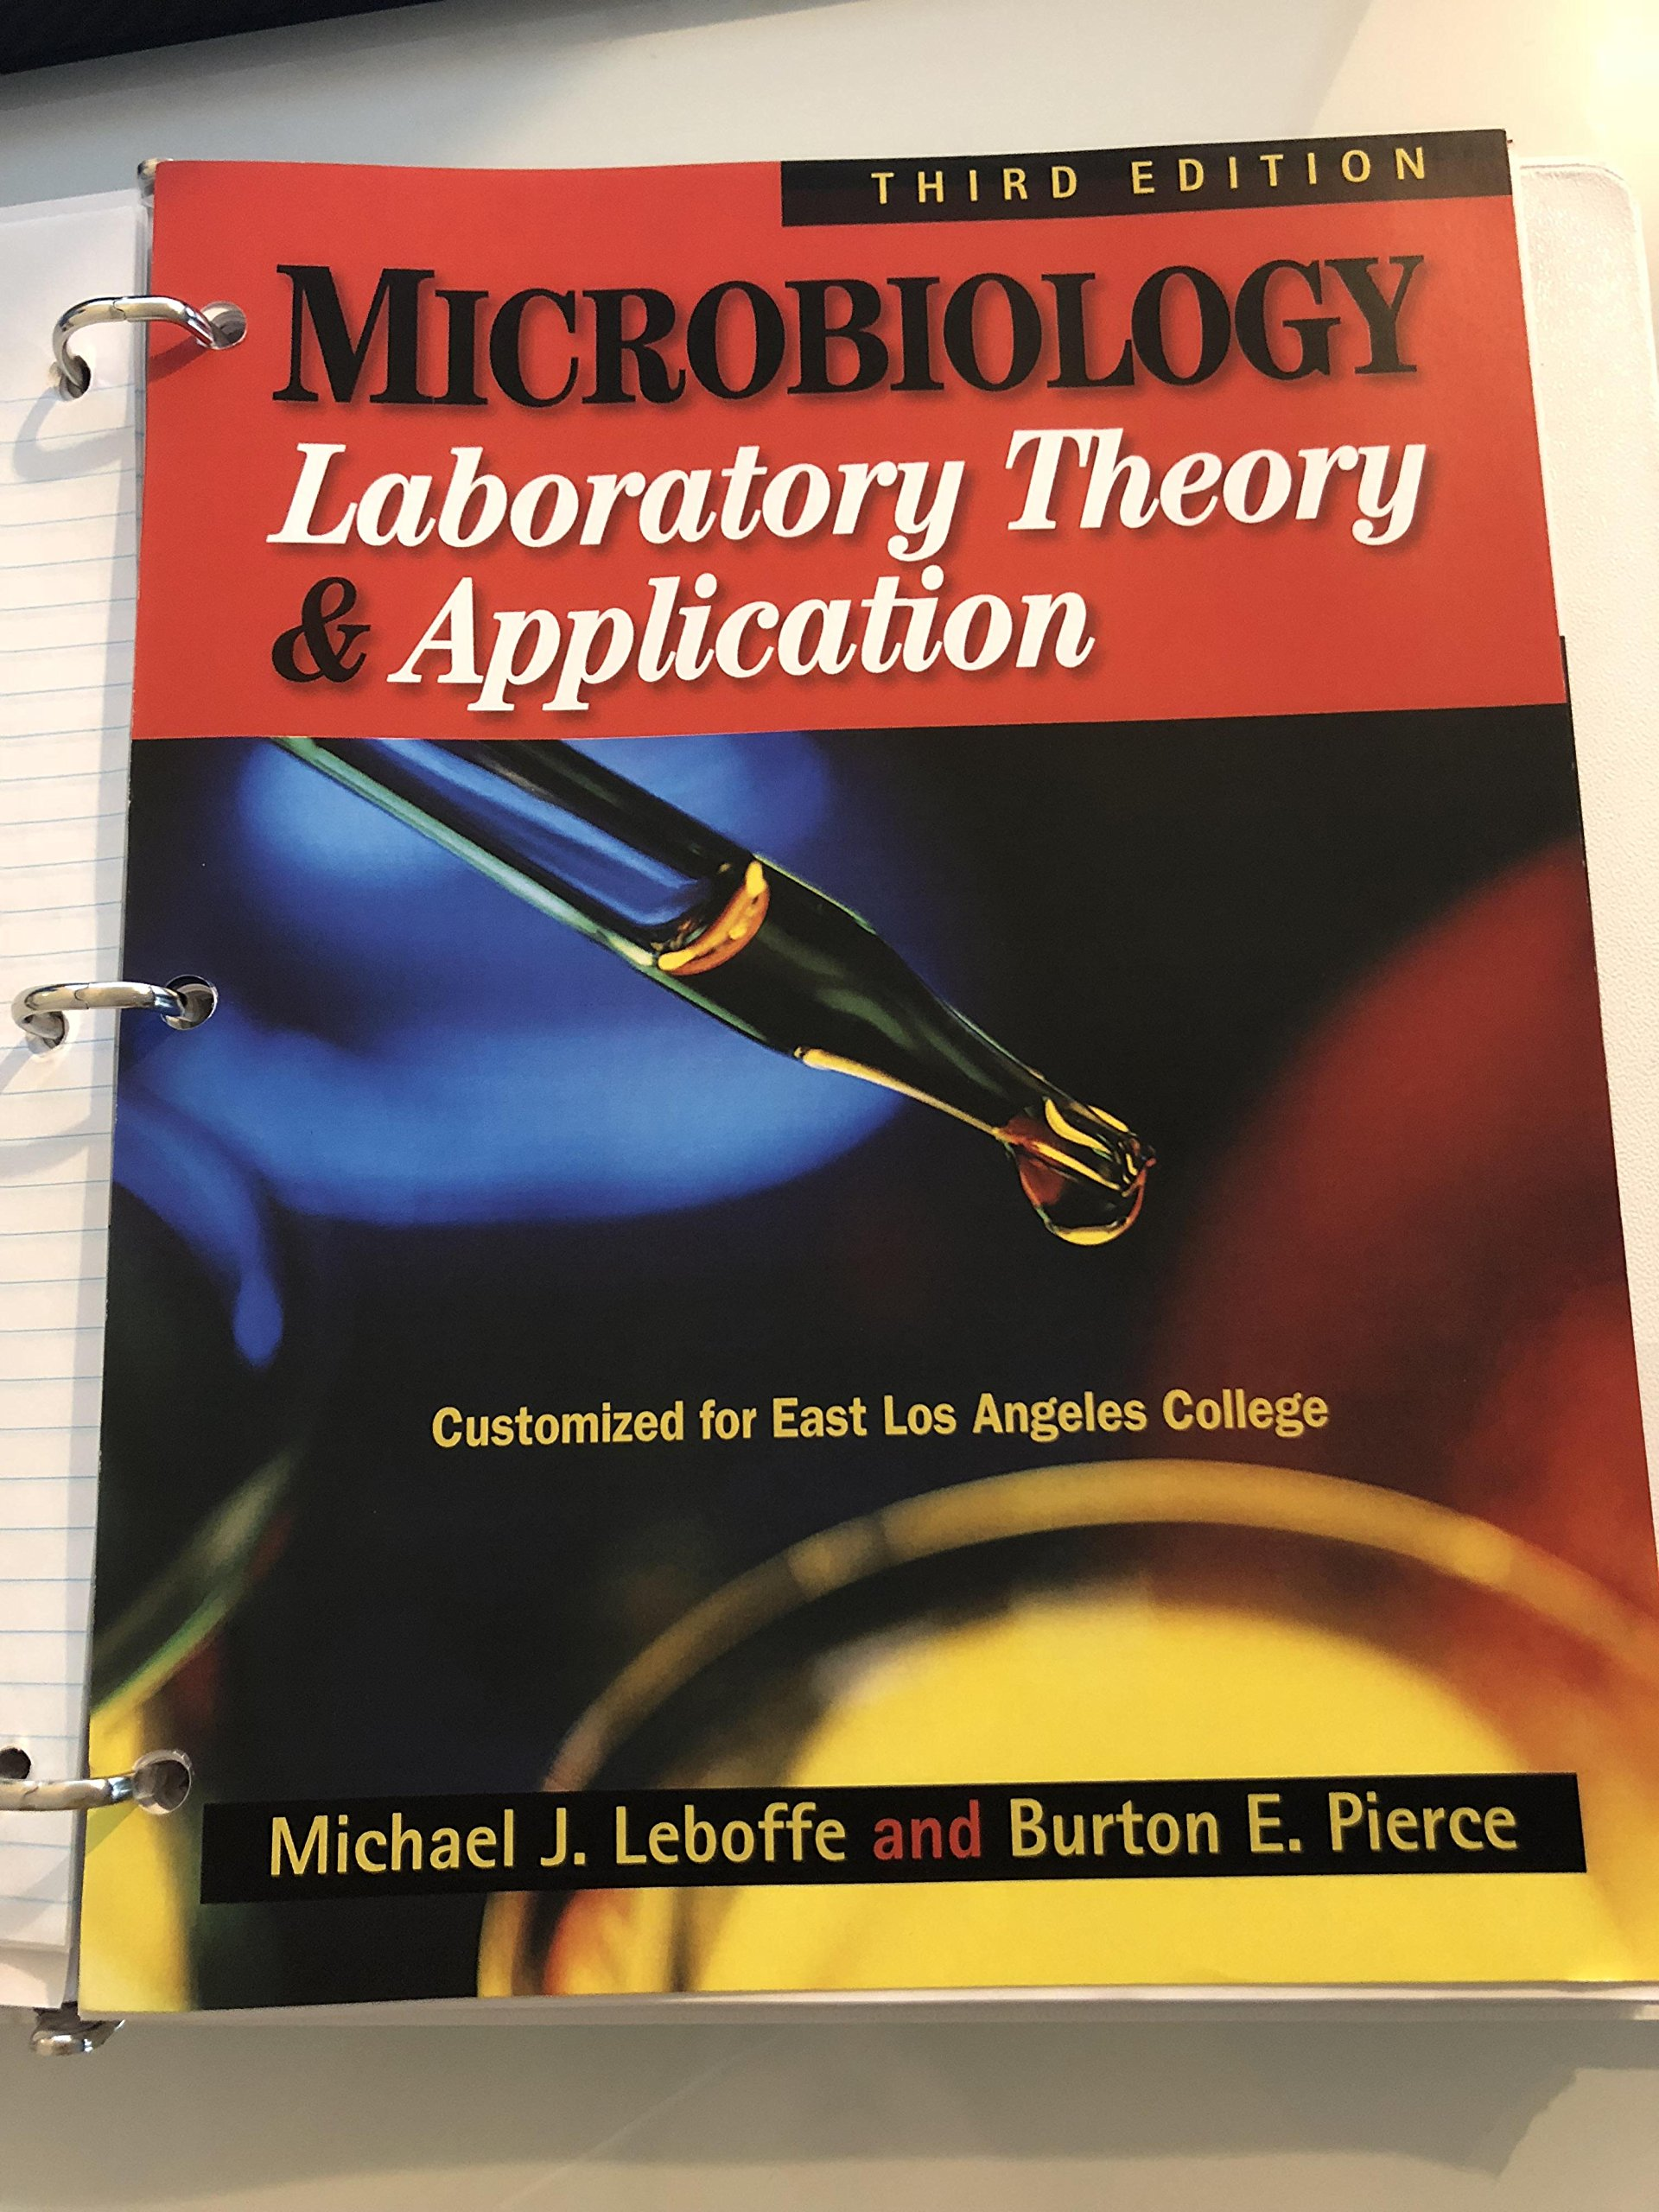 Microbiology: Laboratory Theory & Application Manual Third Edition (**East  Los Angeles Customized Edition**): Michael J. Leboffe, Burton E. Pierce: ...